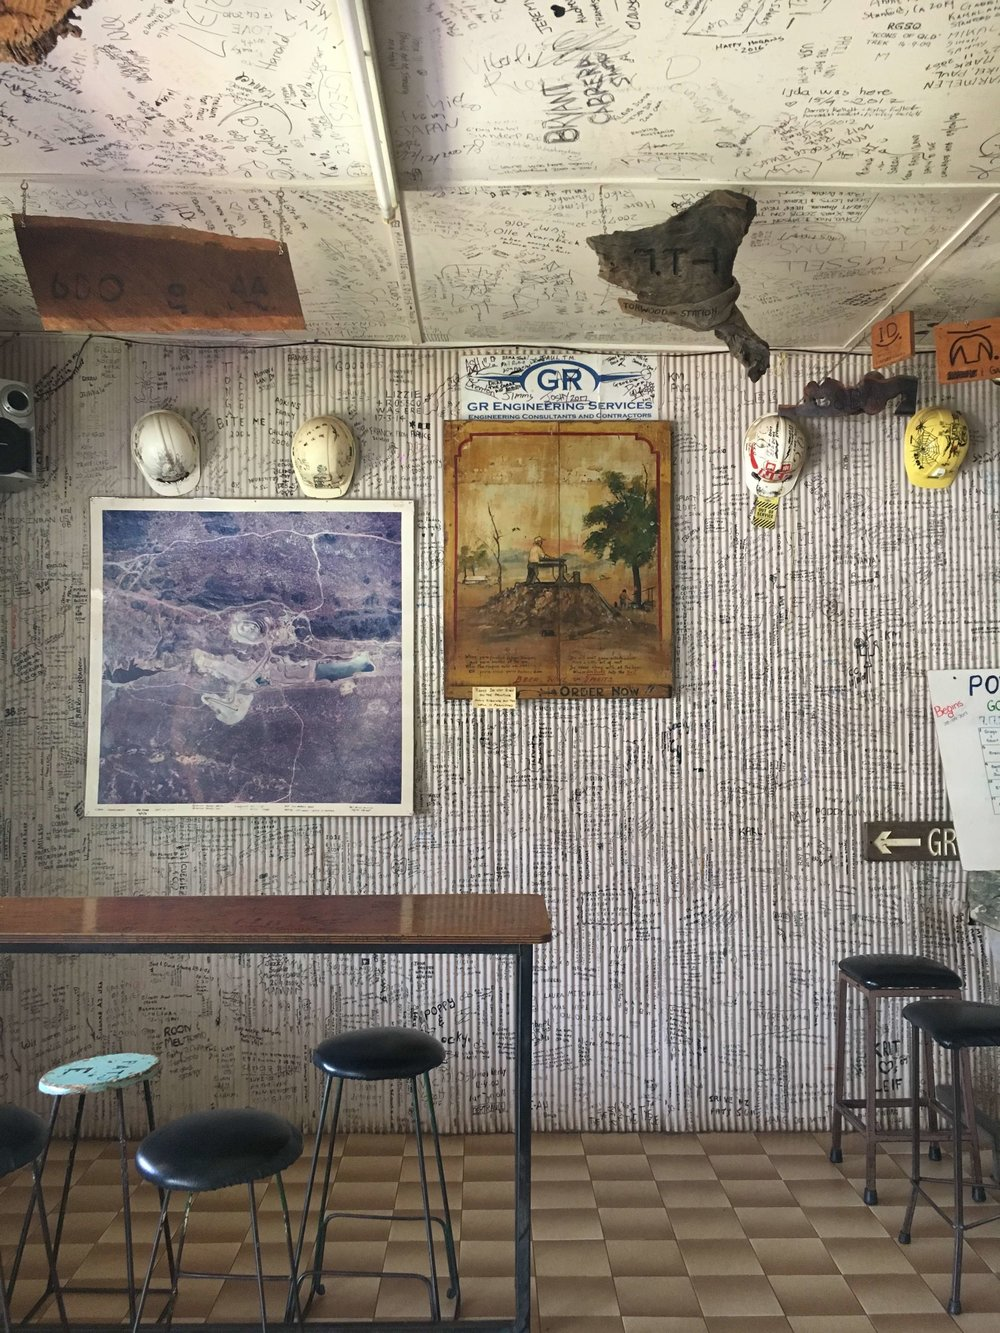 The Post Office Hotel at Chillagoe, where visitors leave their mark. Can you spot a glimpse of the bar counter? It's made of local marble from nearby quarries.